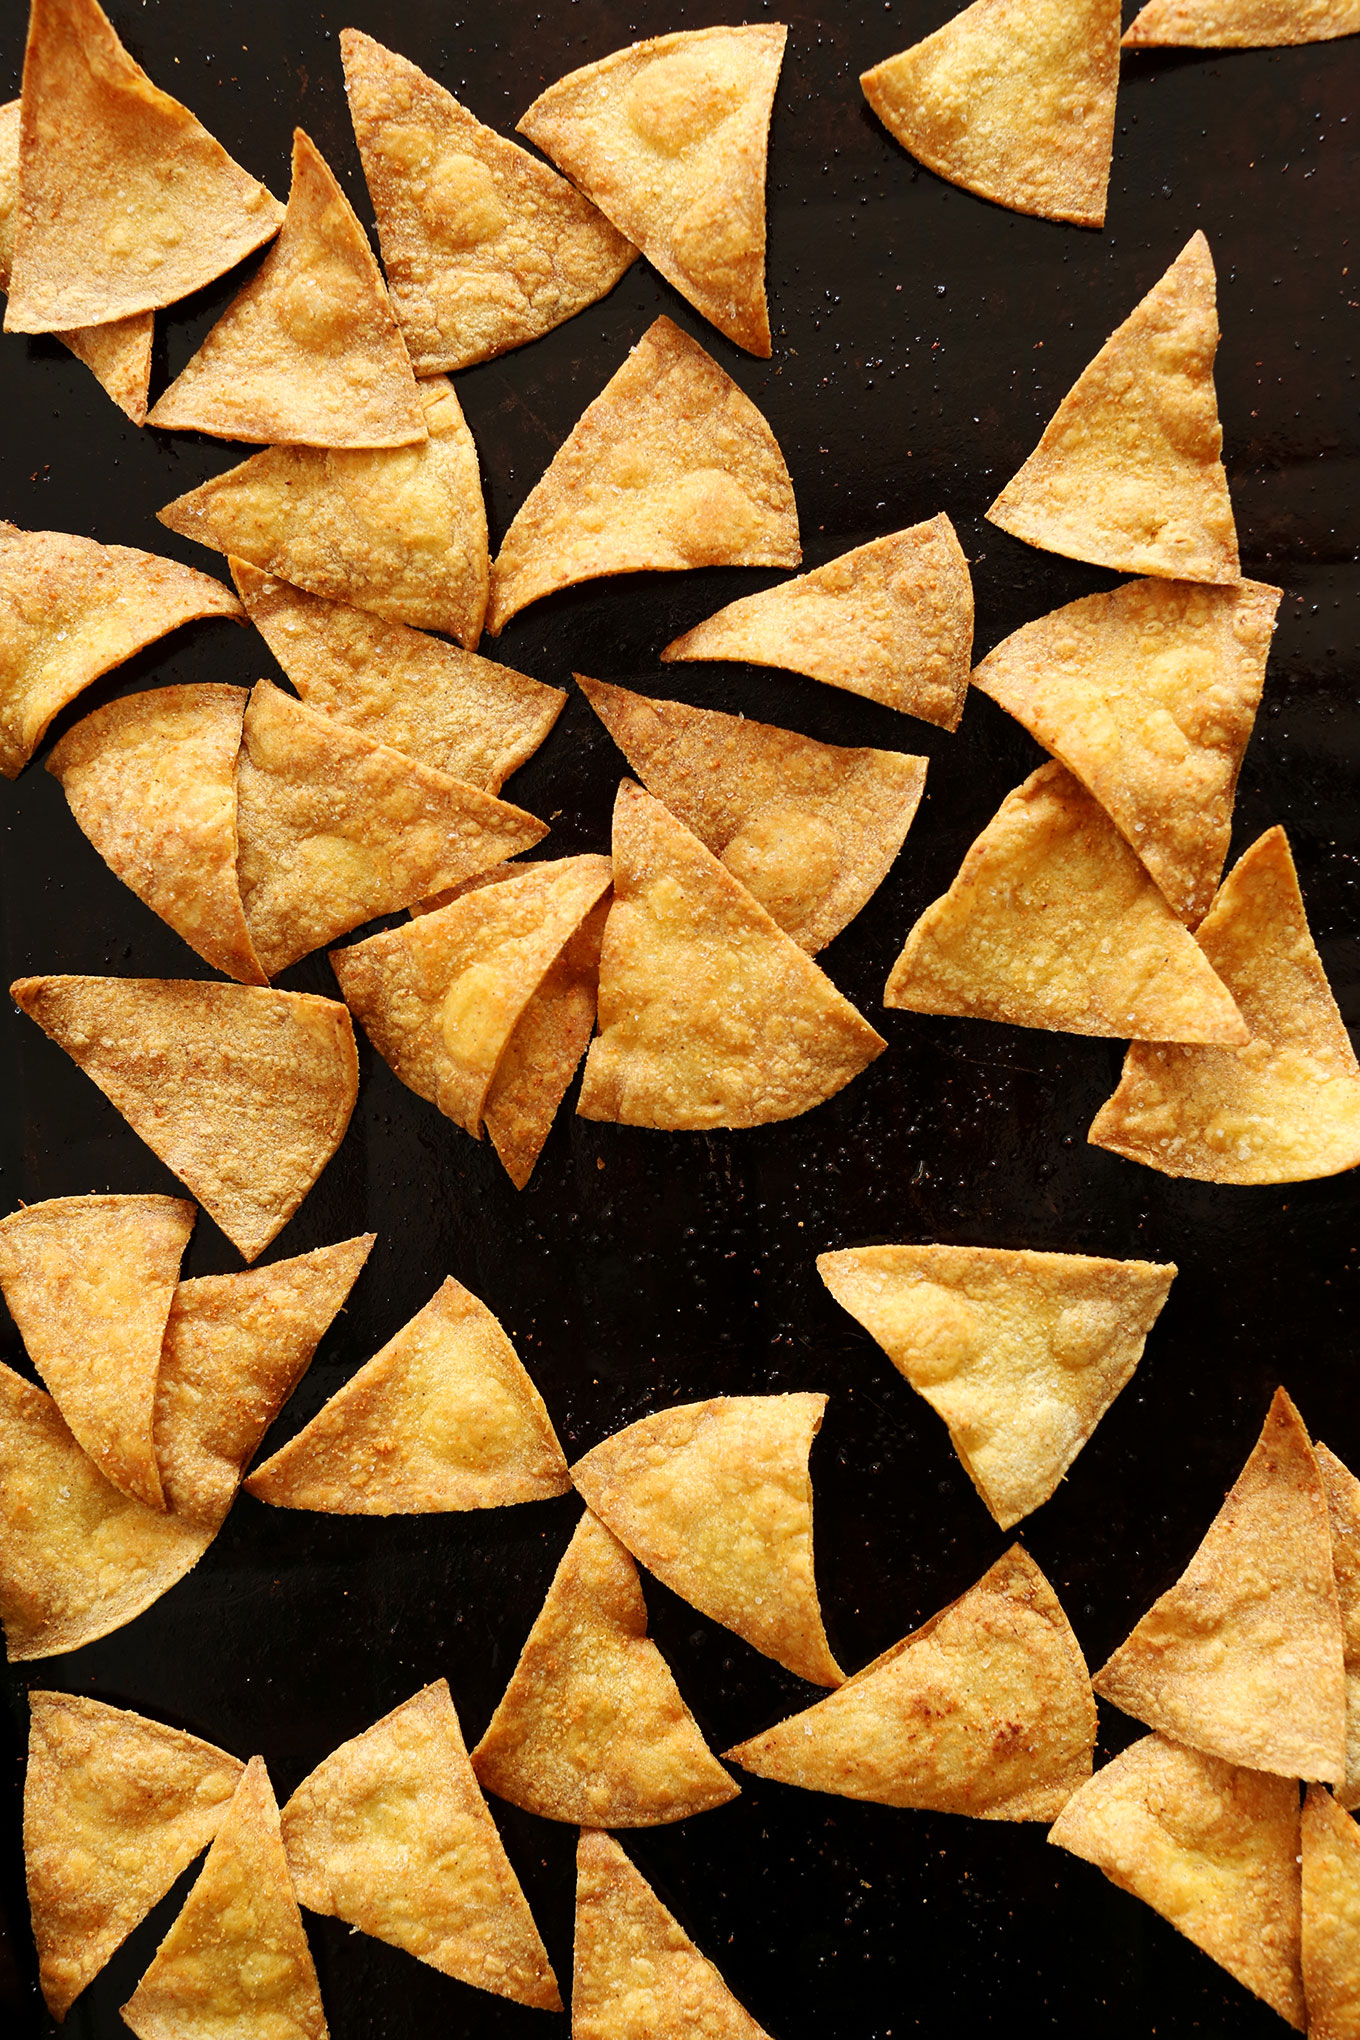 Baking sheet filled with homemade Baked Tortilla Chips